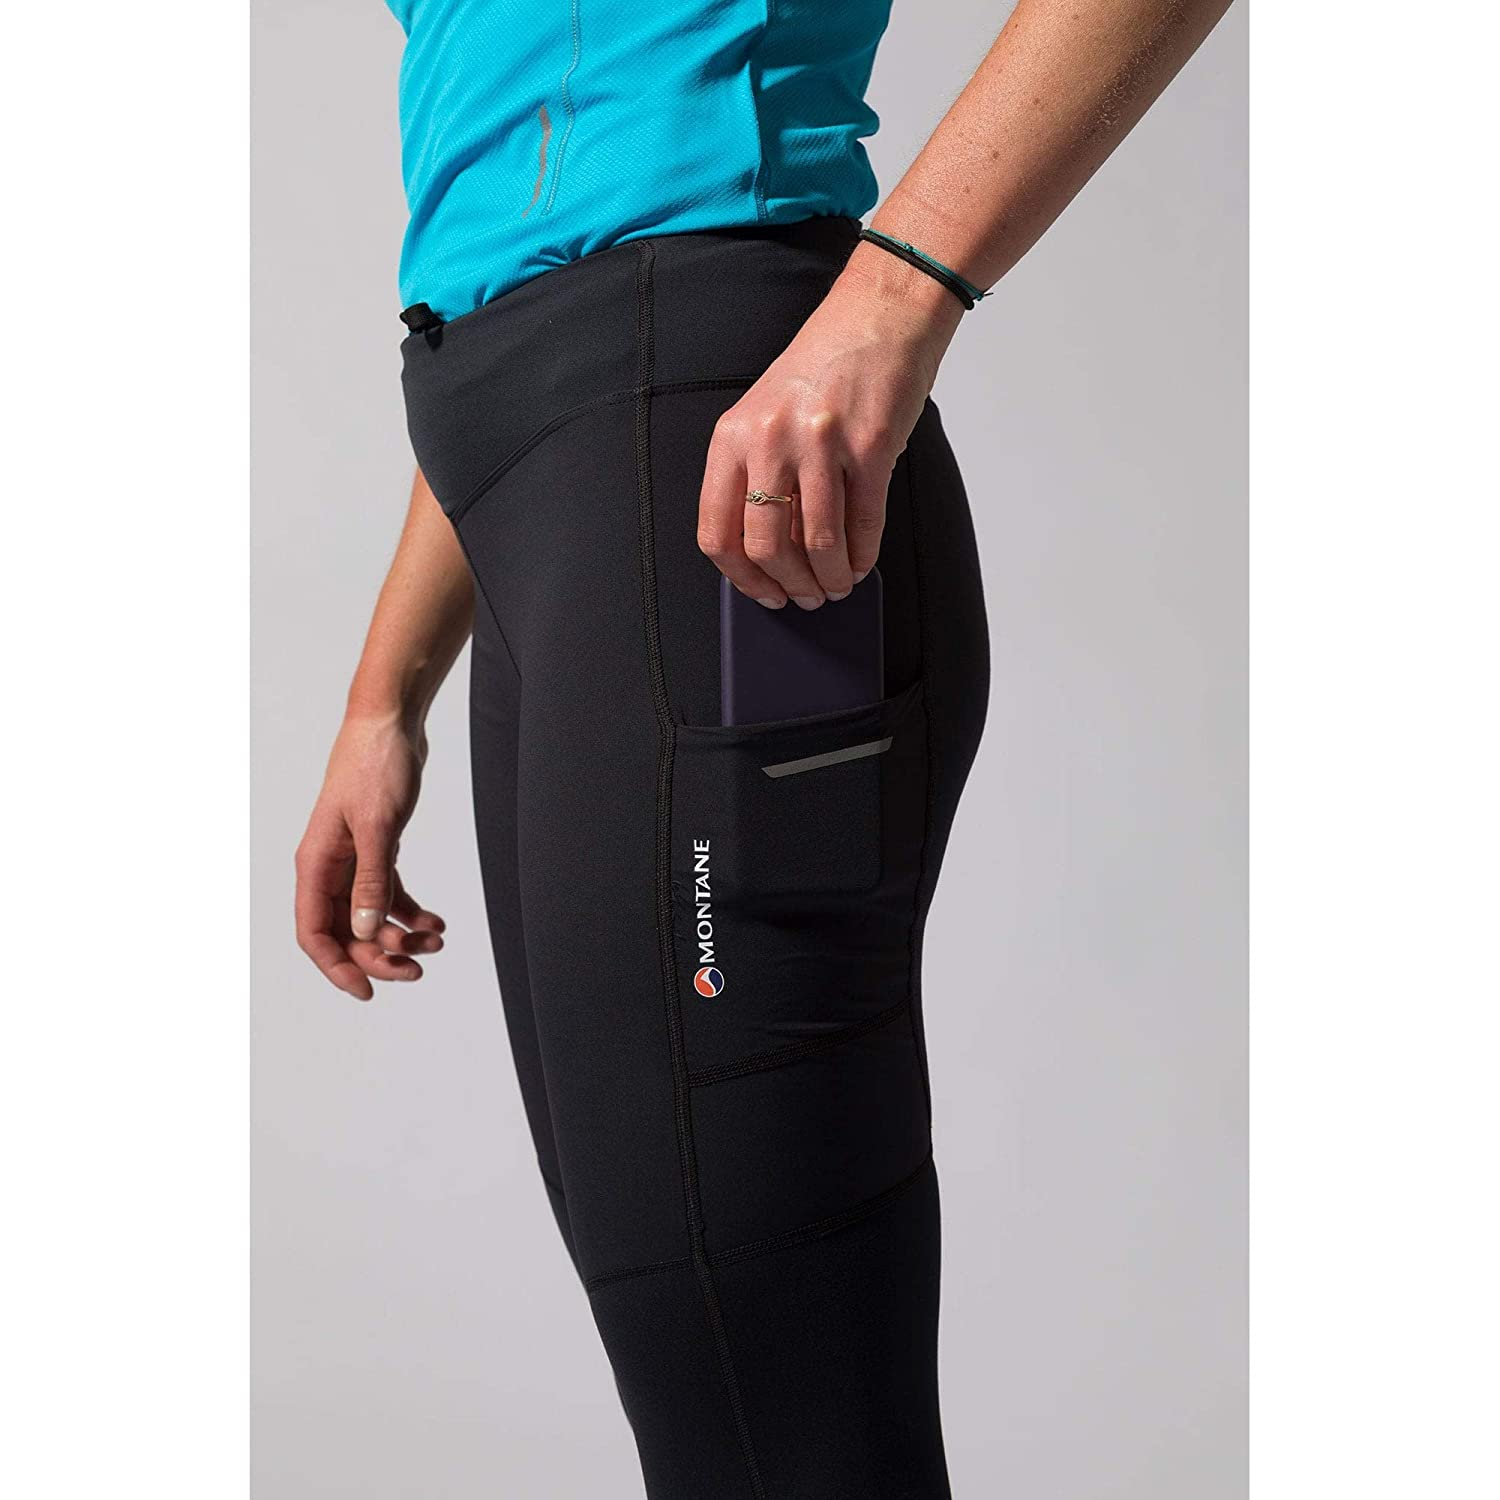 4fe47f01a6e9c Montane Women's Trail Series Thermal Tights: Amazon.co.uk: Clothing